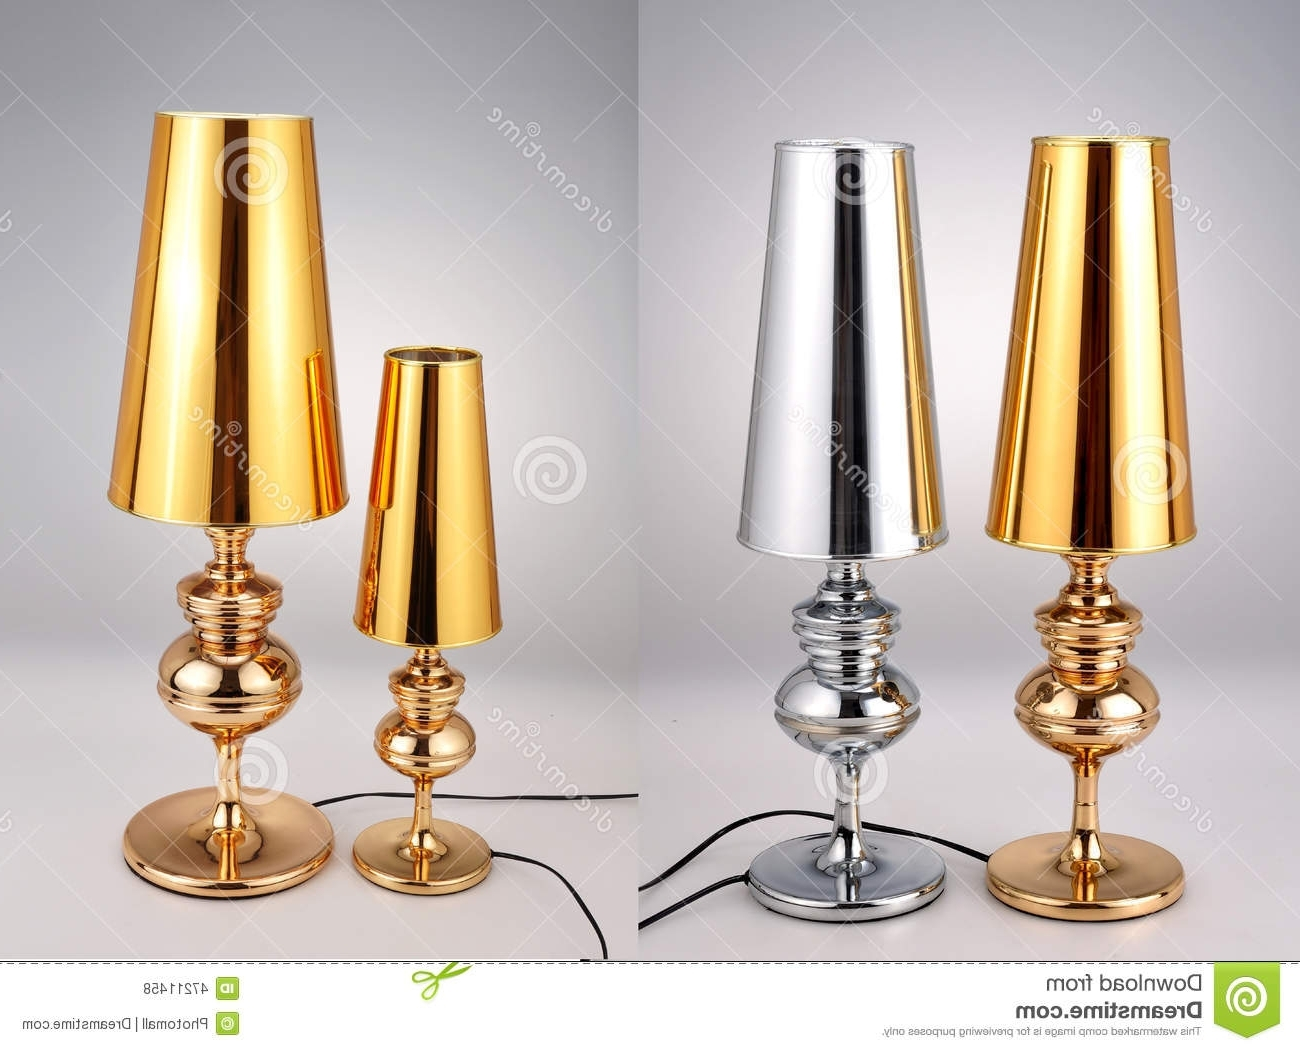 2019 Golden And Silver Table Lamps,luxury Table Lights Stock Photo With Gold Living Room Table Lamps (View 16 of 20)